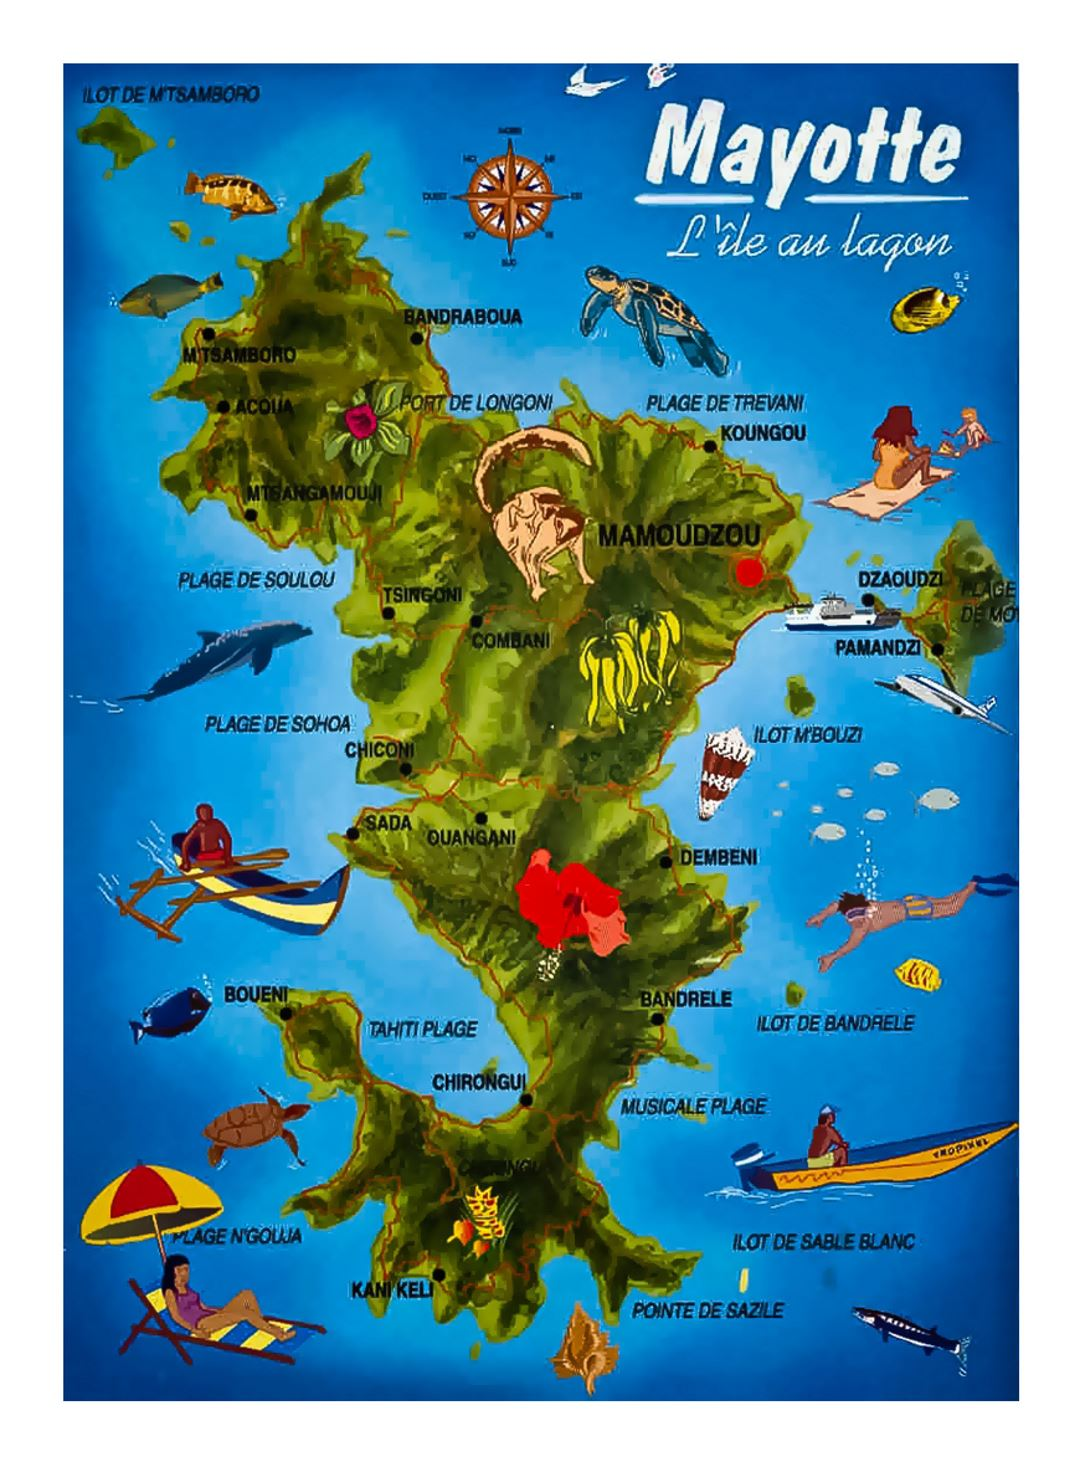 Detailed tourist map of Mayotte Island